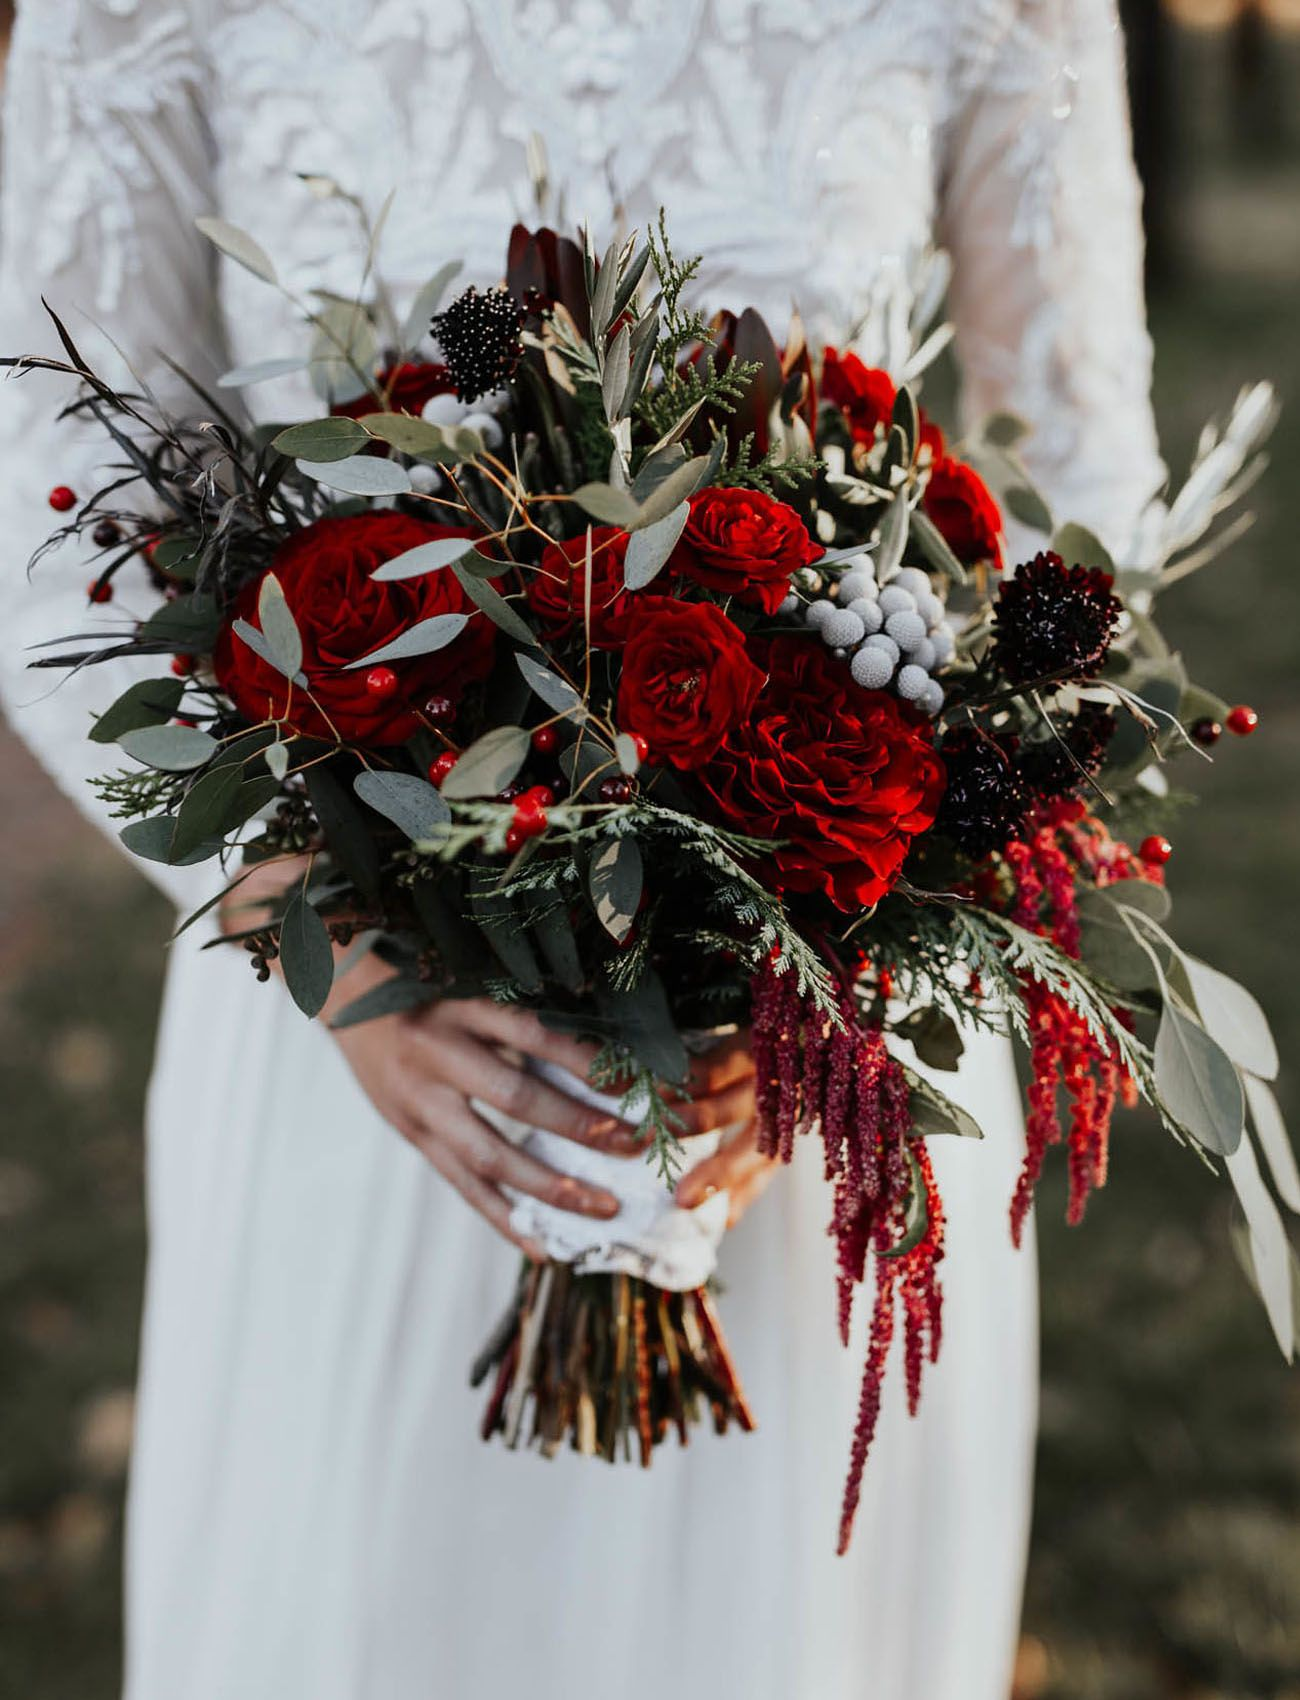 The Bridesmaids Wore Burgundy in this Laid Back Winter